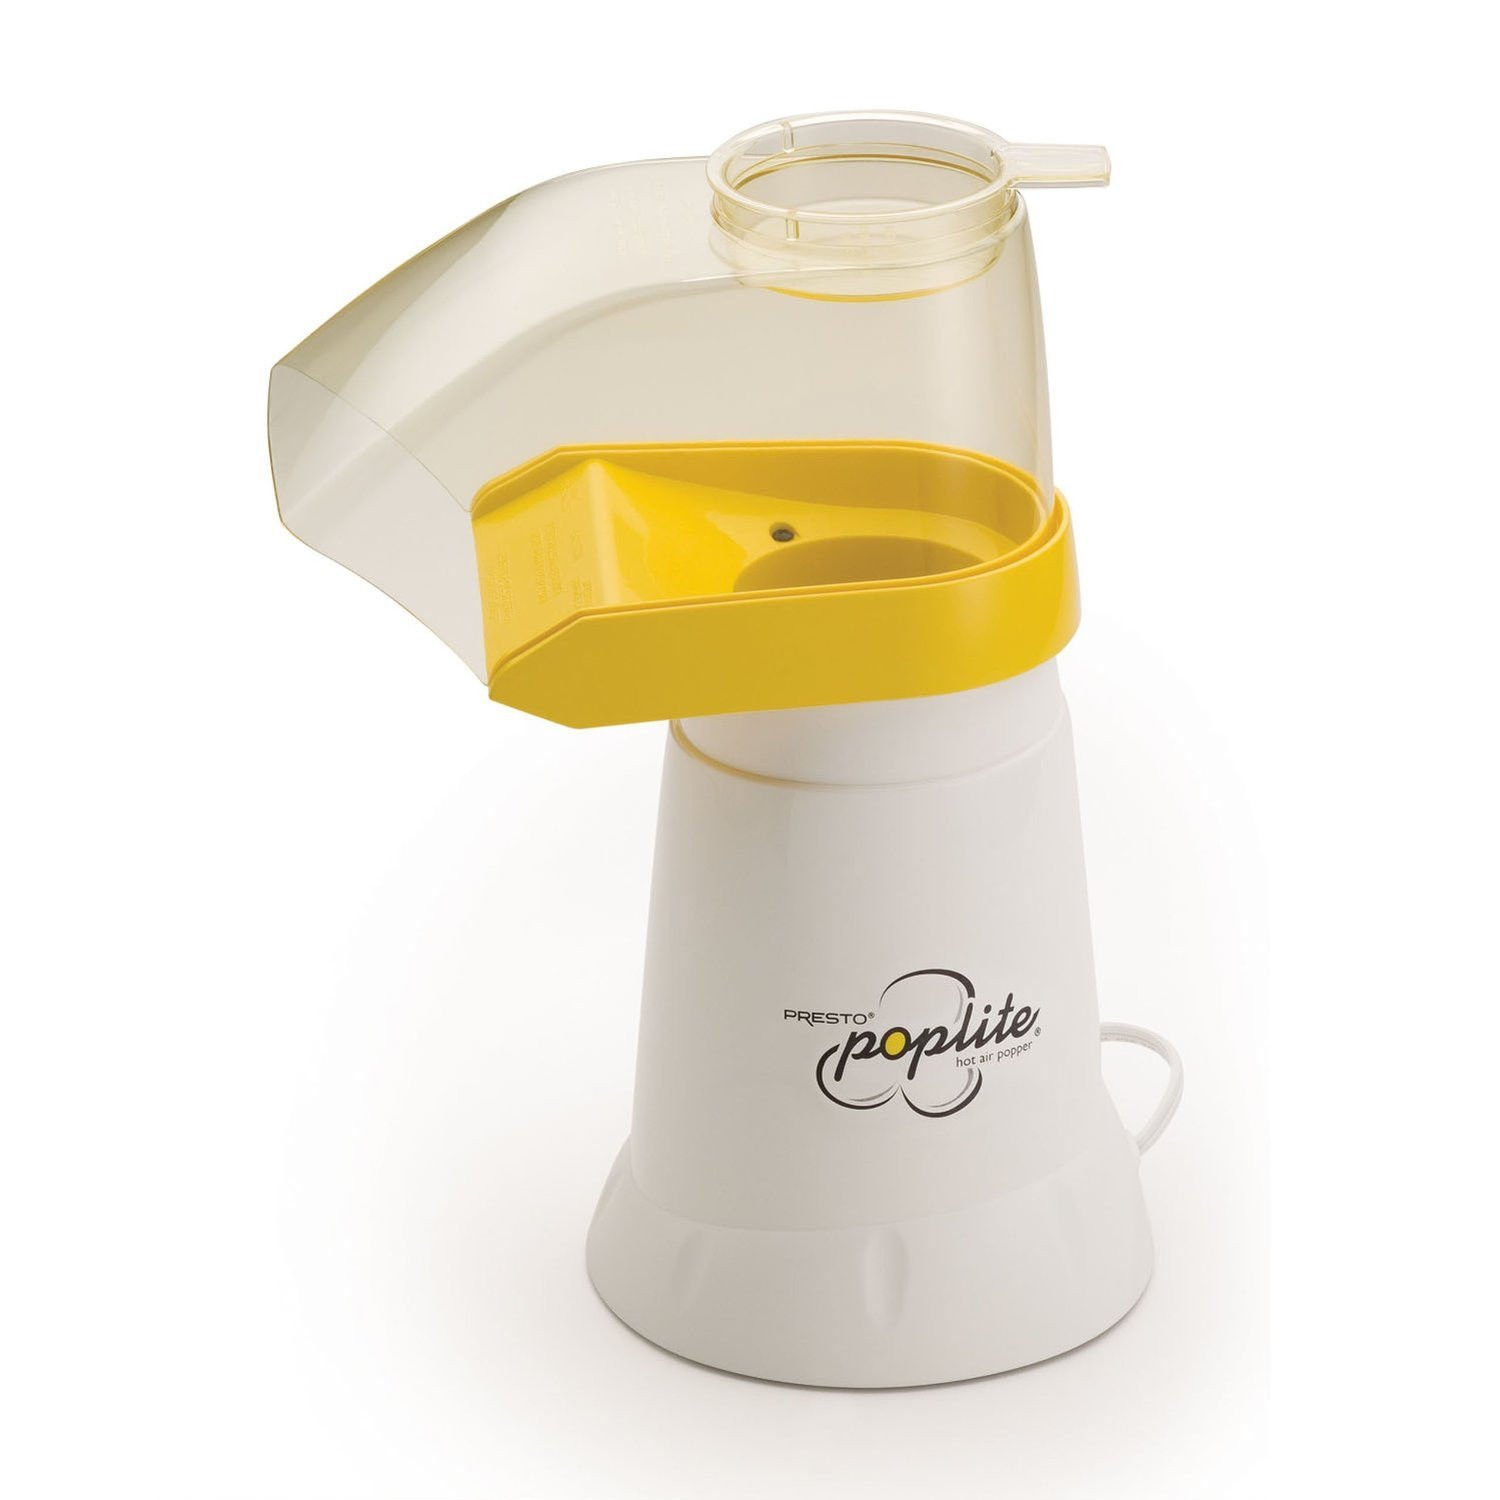 Presto 04820 PopLite Hot Air Corn Popper Makes up to 18 cups in less than 2-1 2-minutes